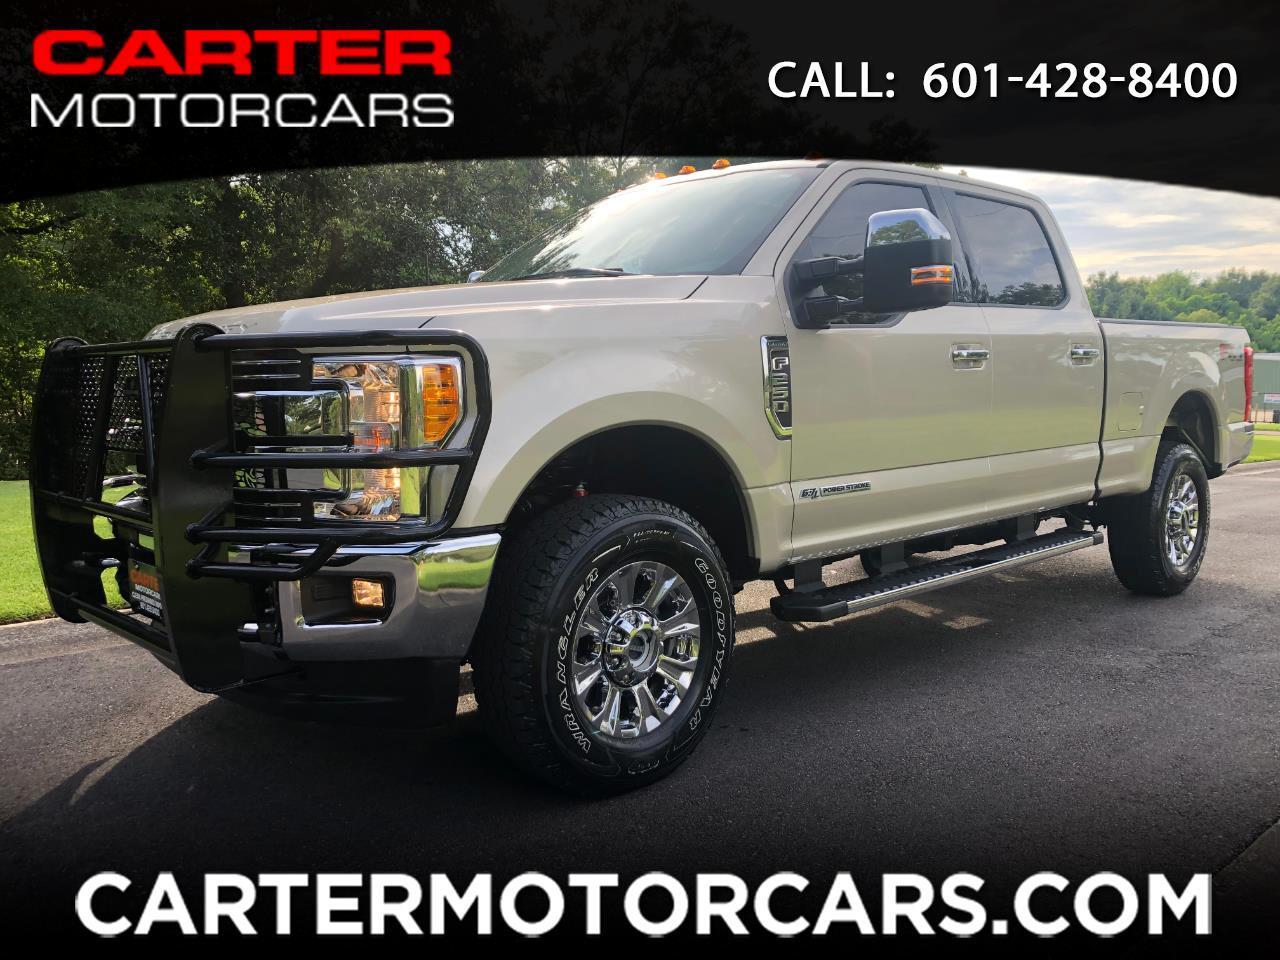 Cars For Sale In Ms >> Used Cars For Sale Laurel Ms 39440 Carter Motorcars